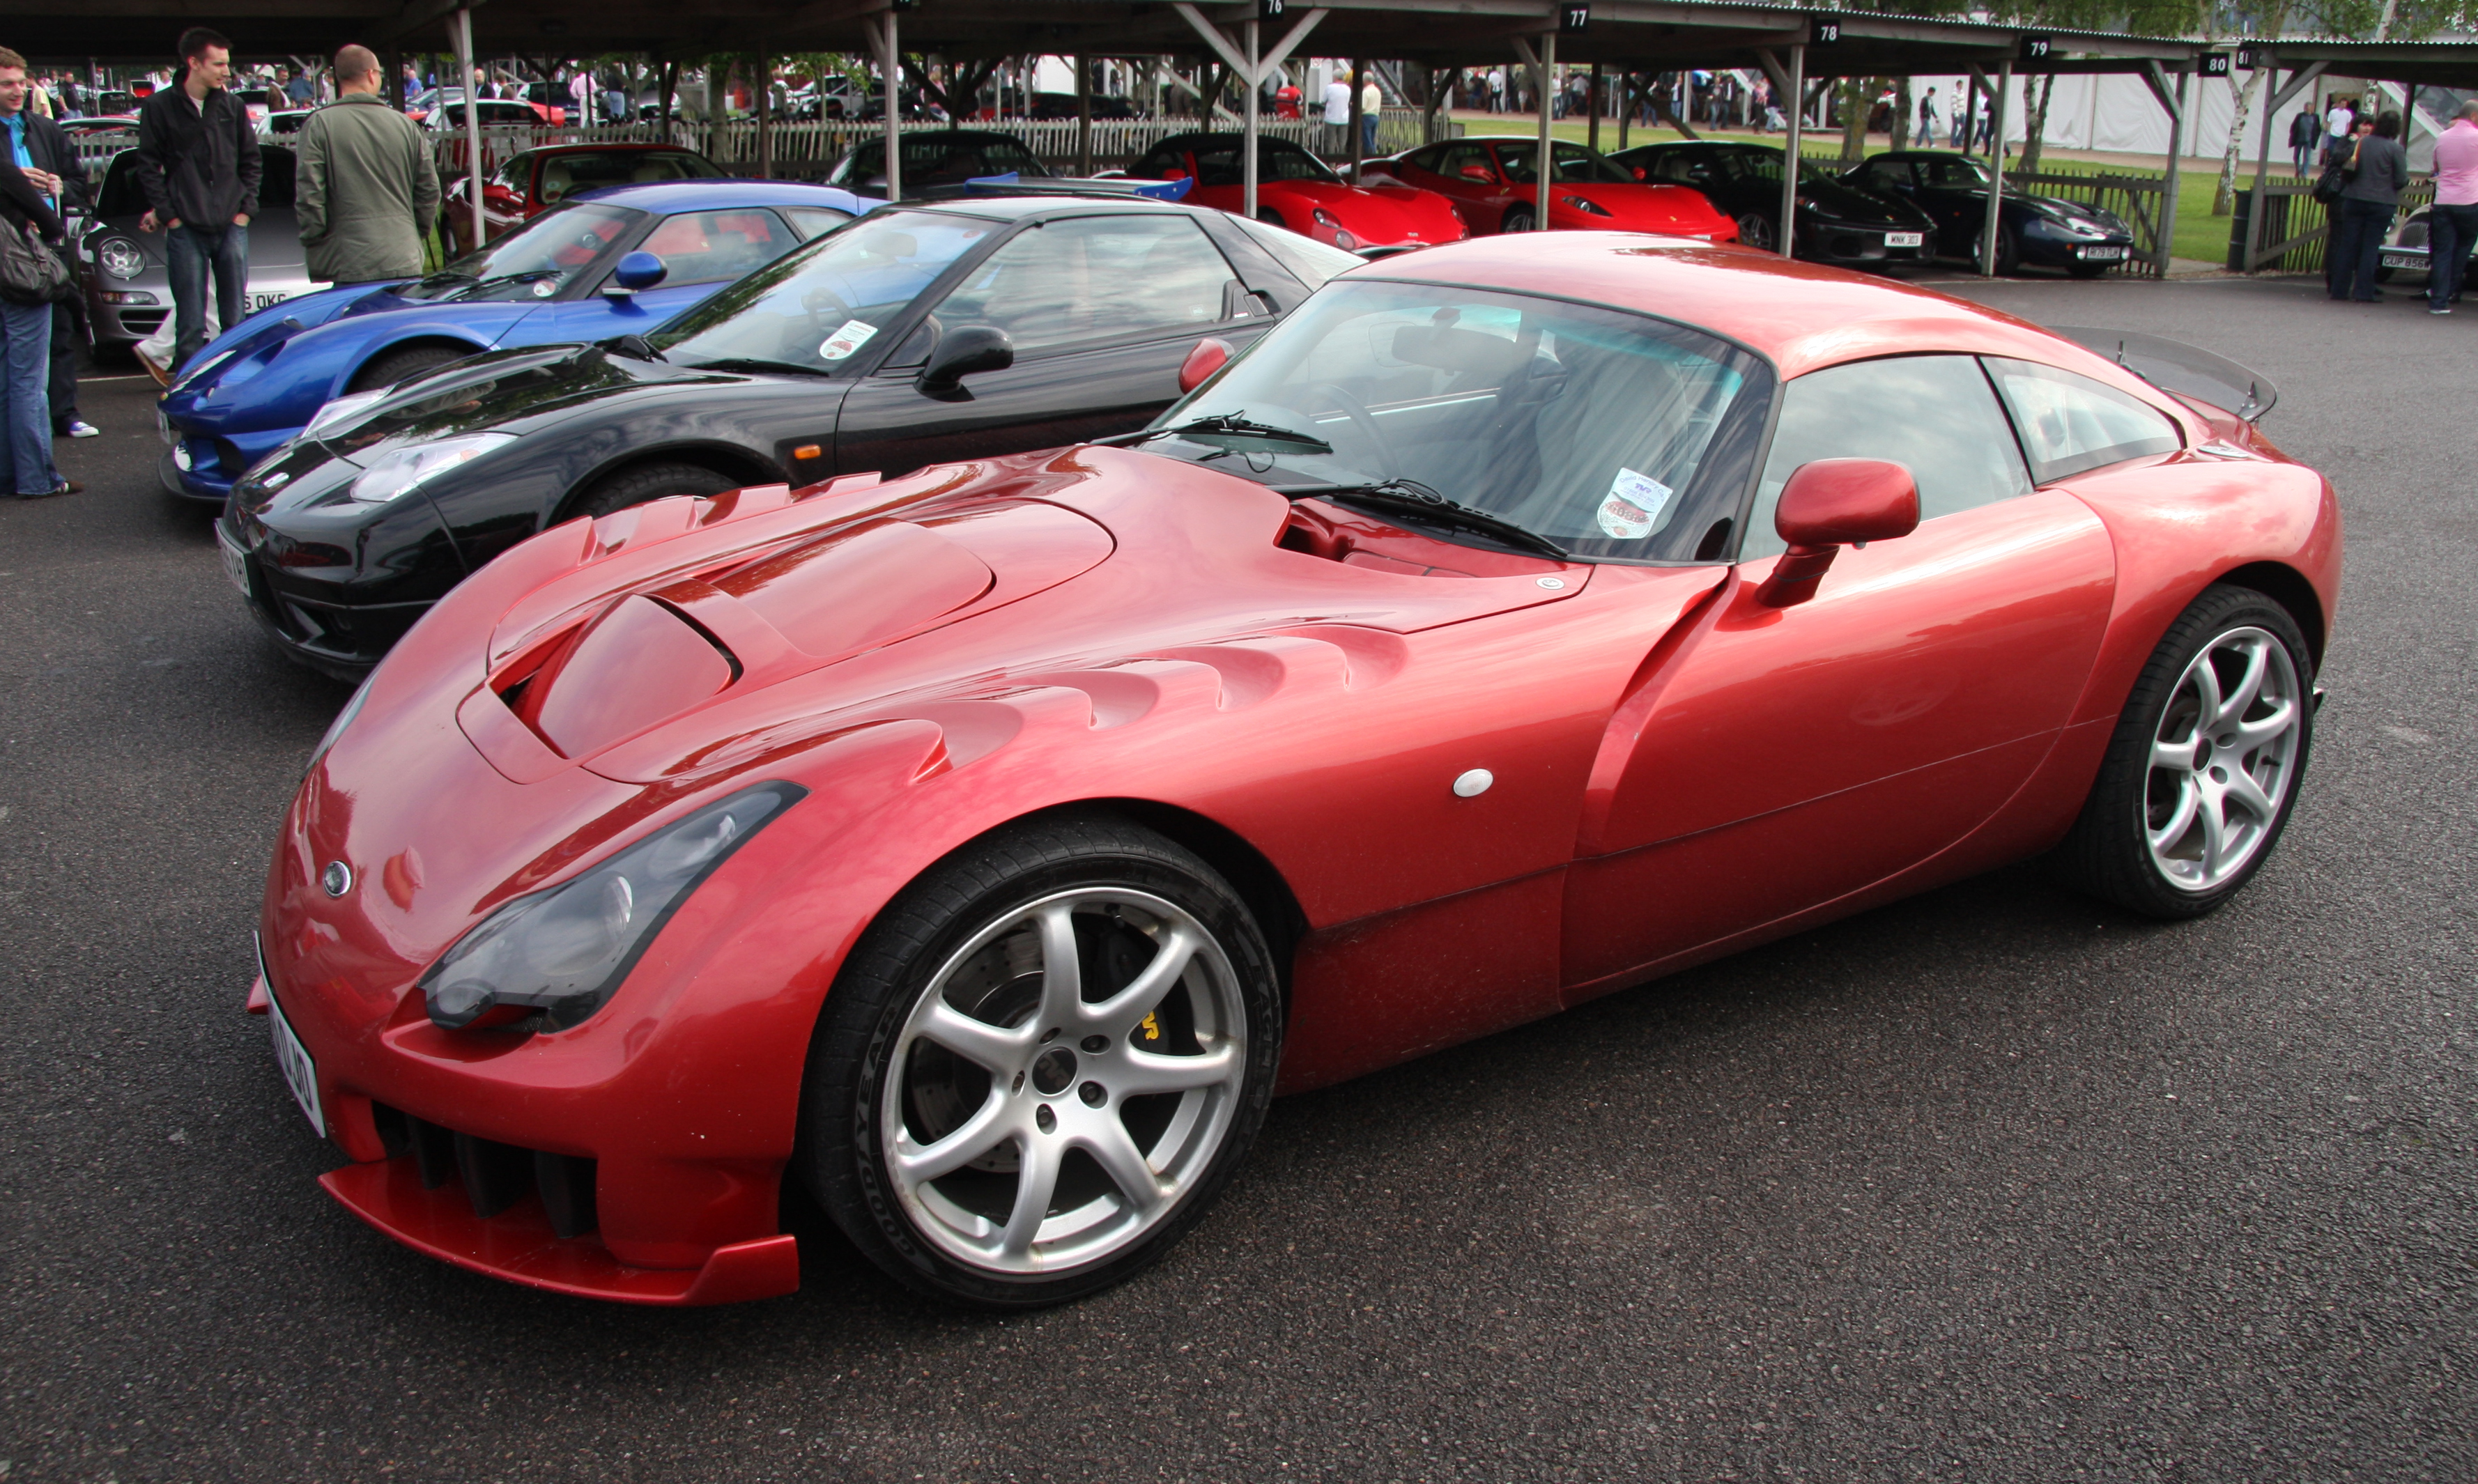 File Tvr Sagaris Flickr Exfordy 1 Jpg Wikimedia